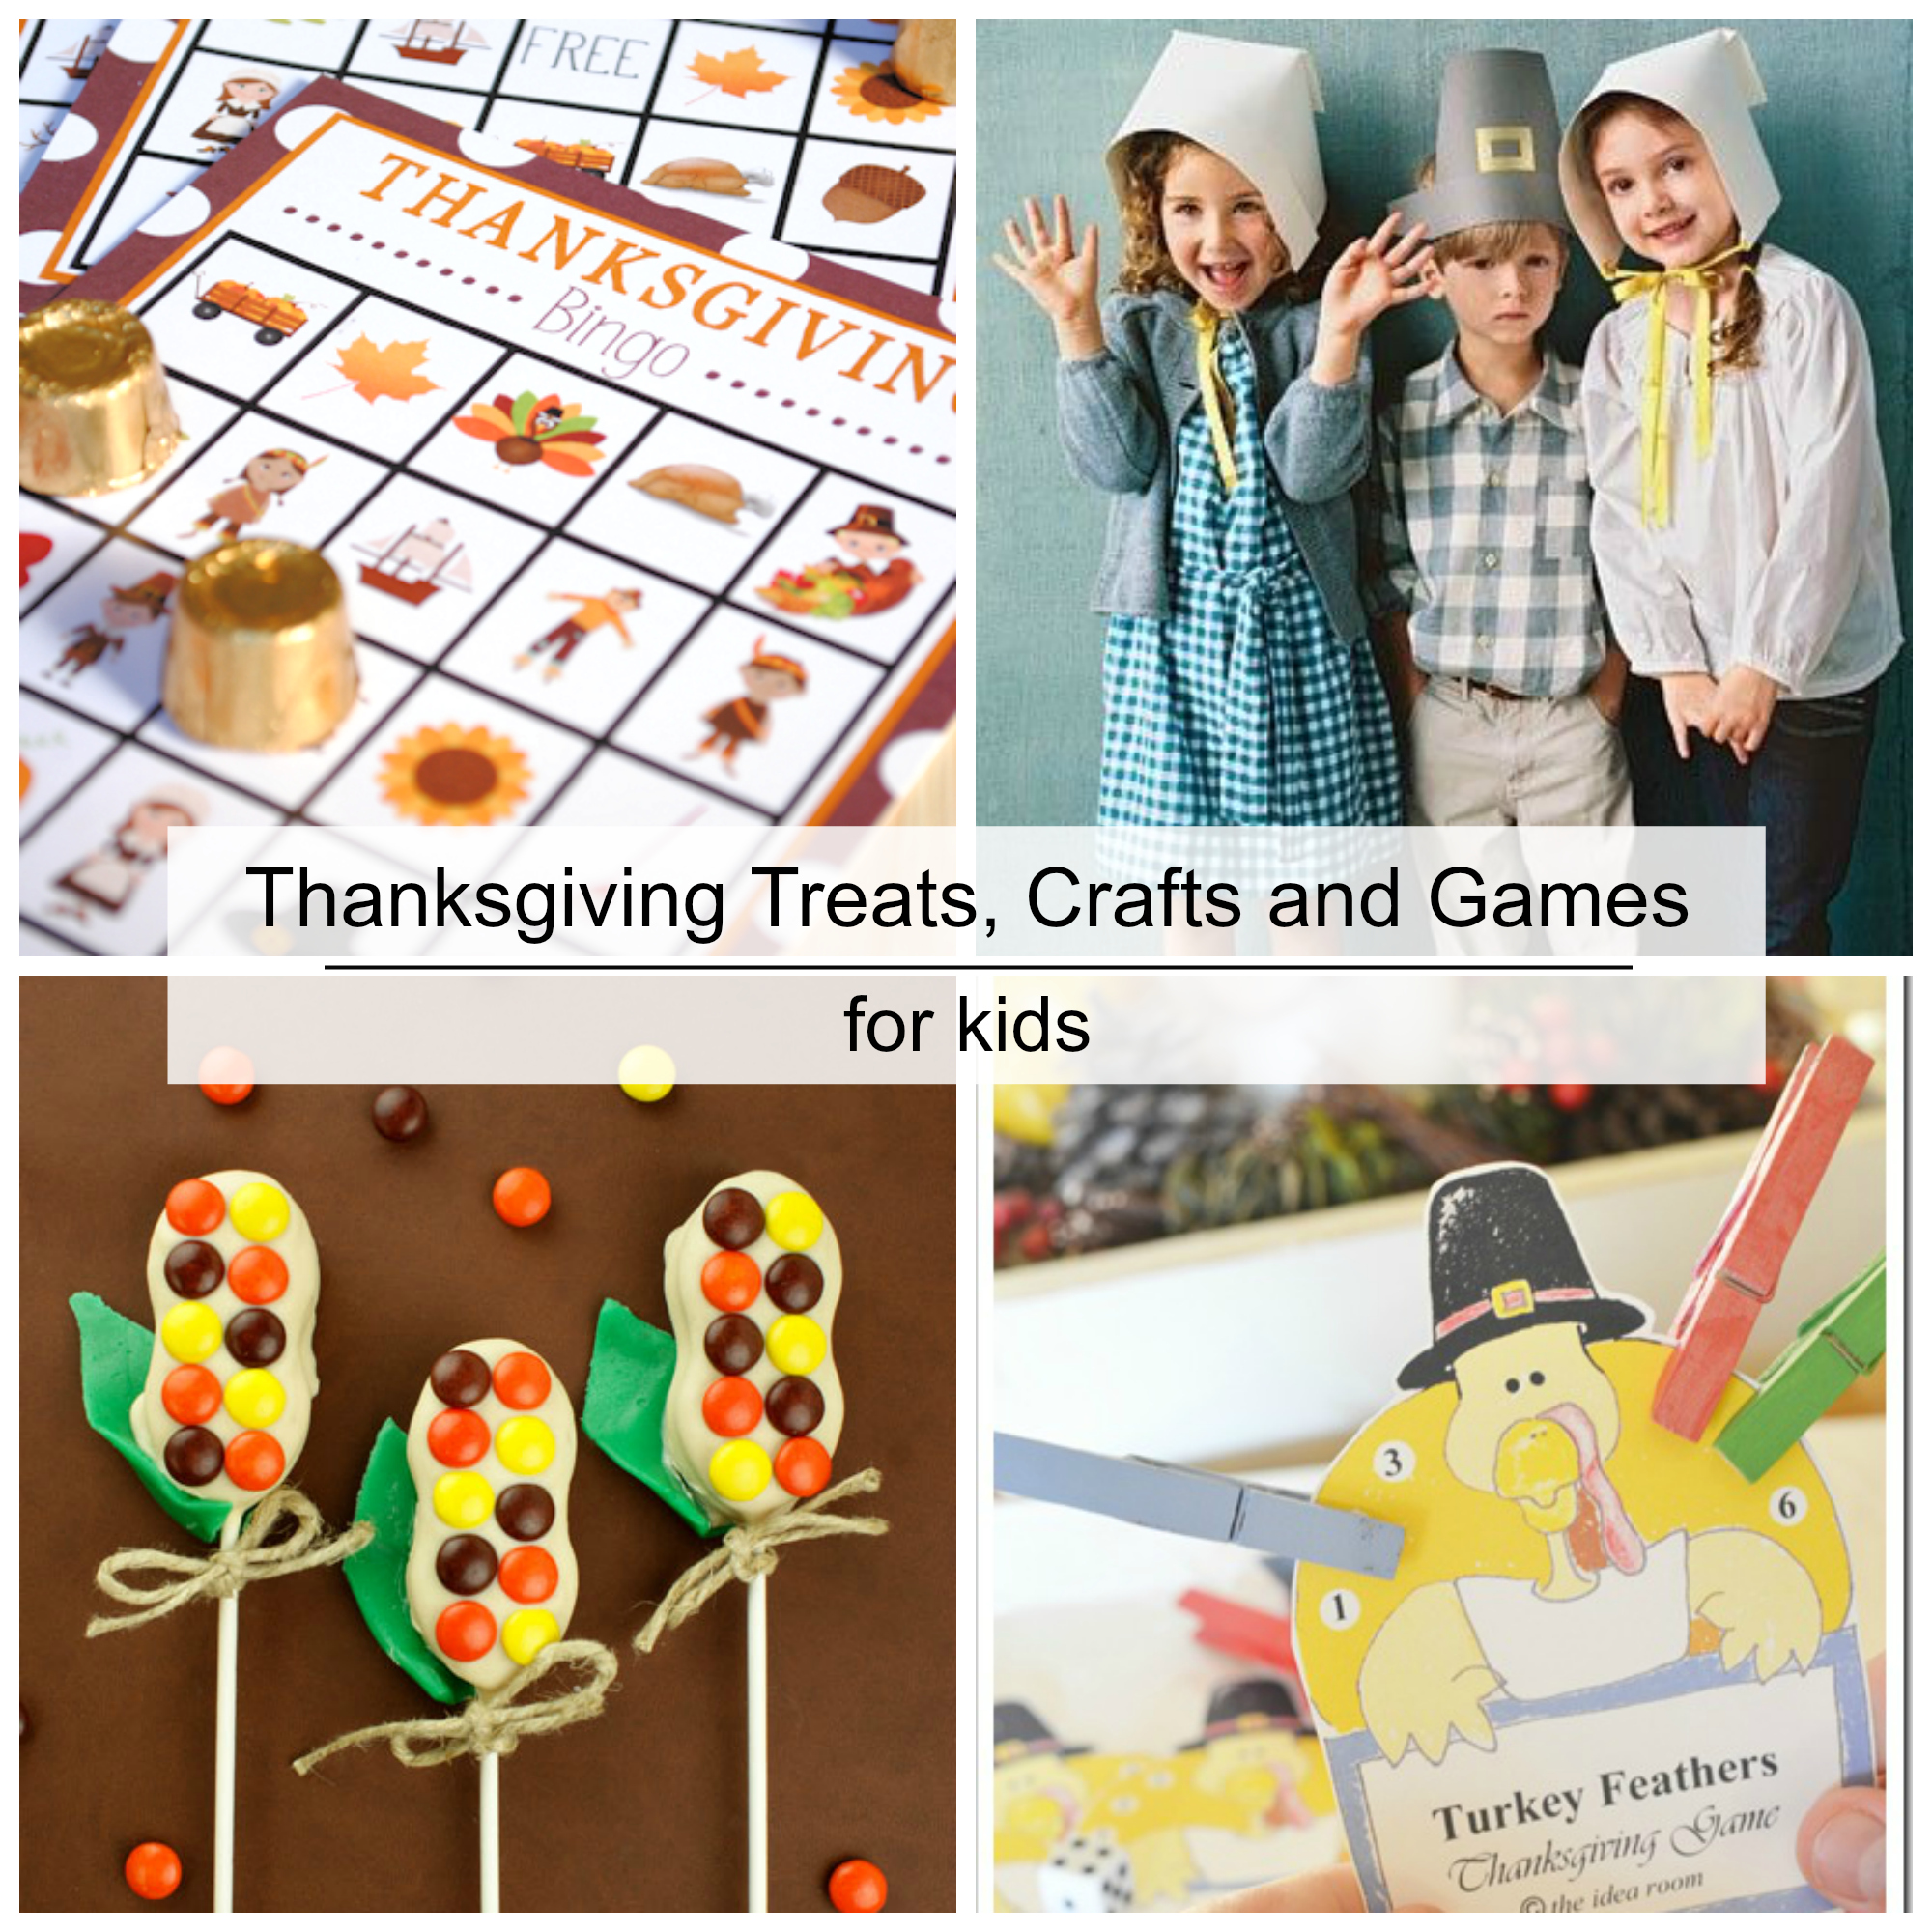 Thanksgiving-Treats-Crafts-Games-Kids